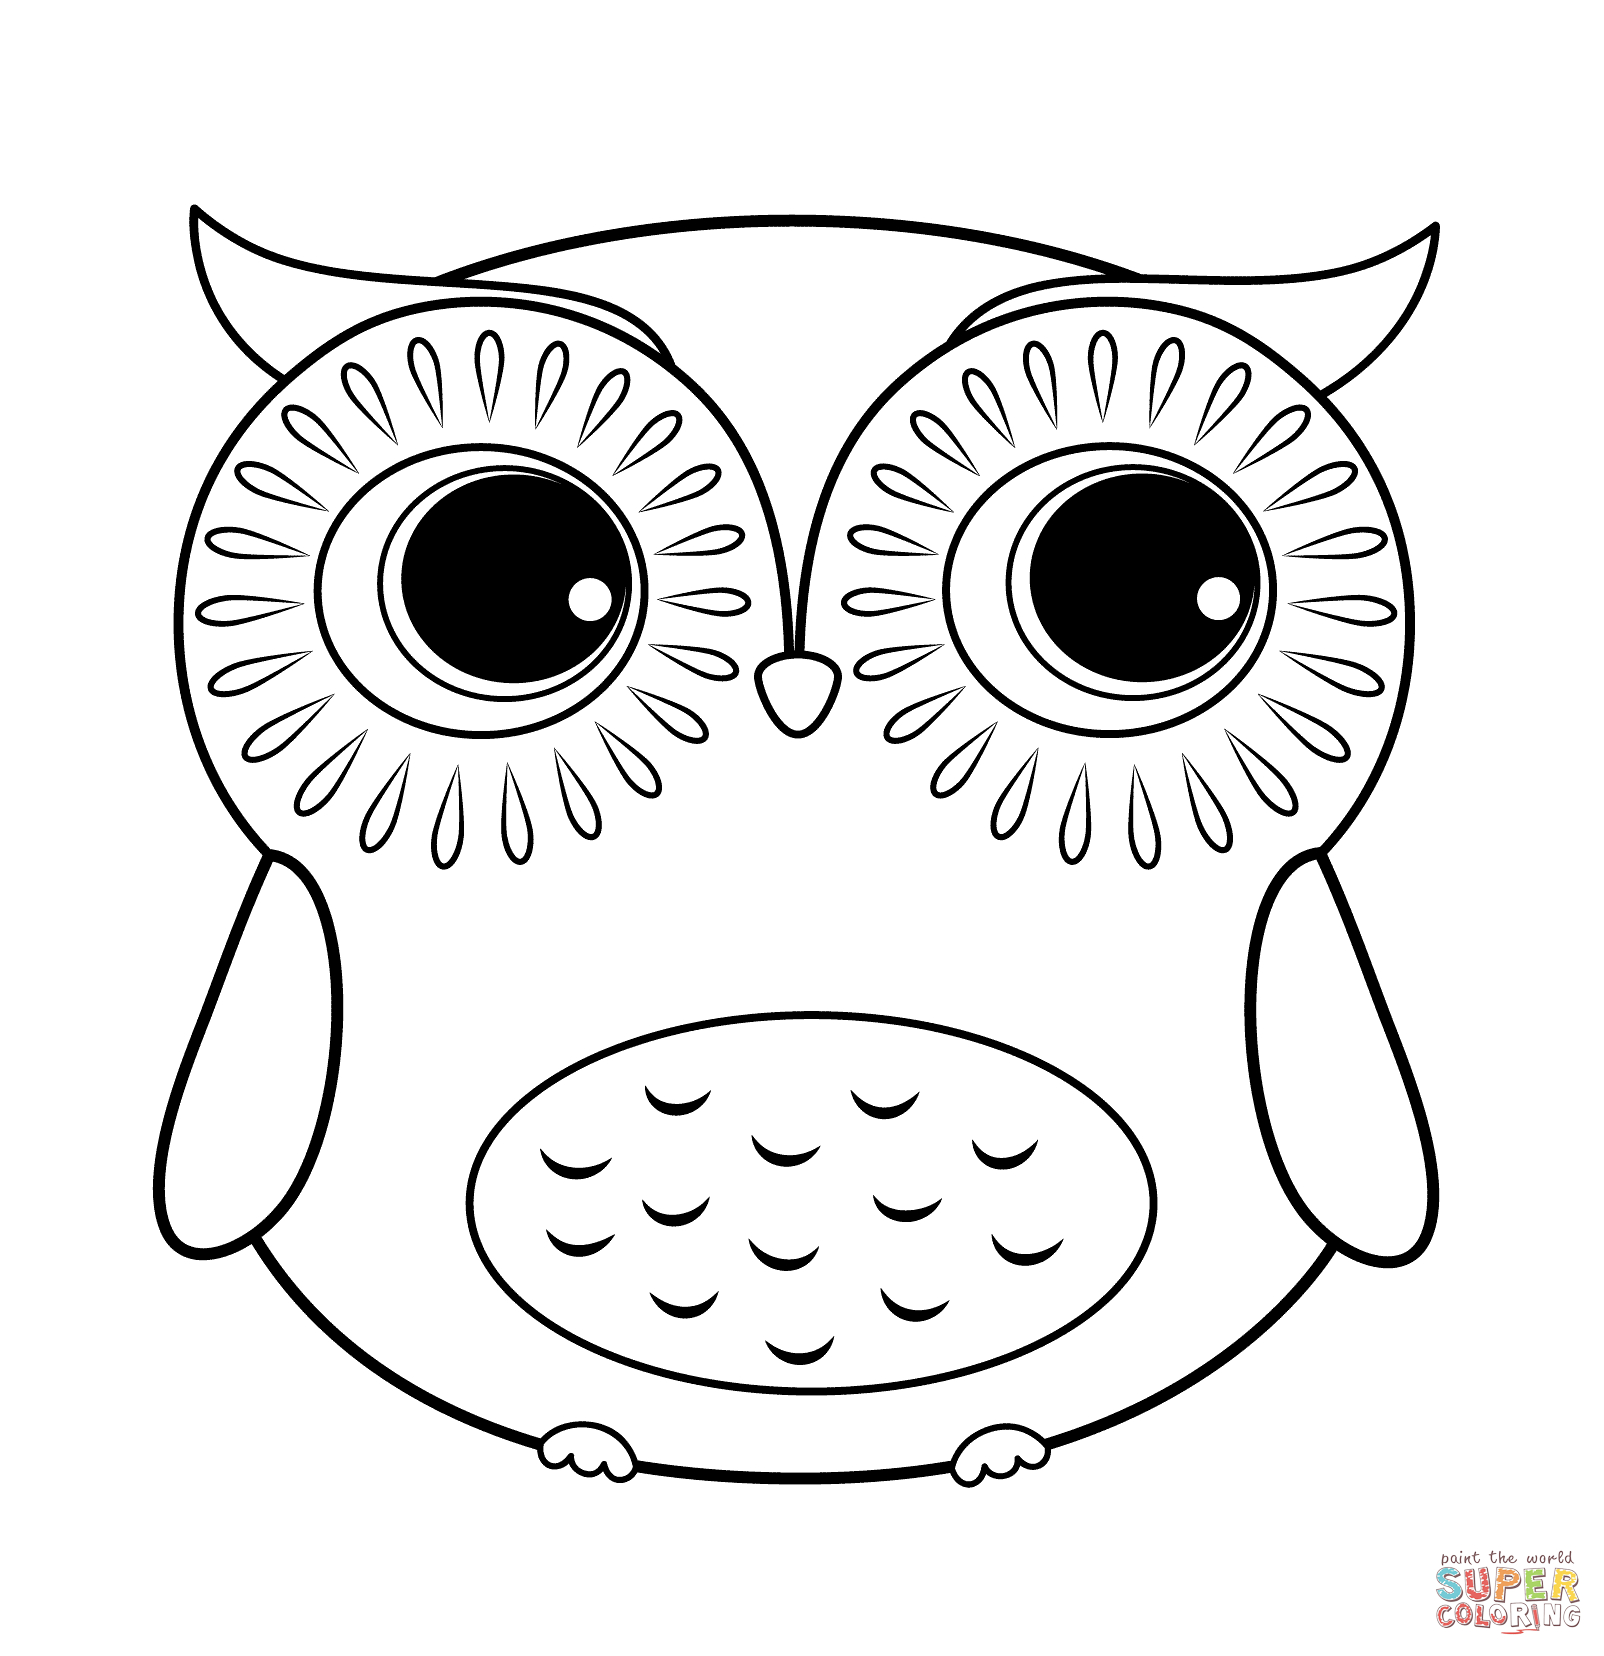 Owls Coloring Pages   Free Coloring Pages - Free Printable Owl Coloring Sheets